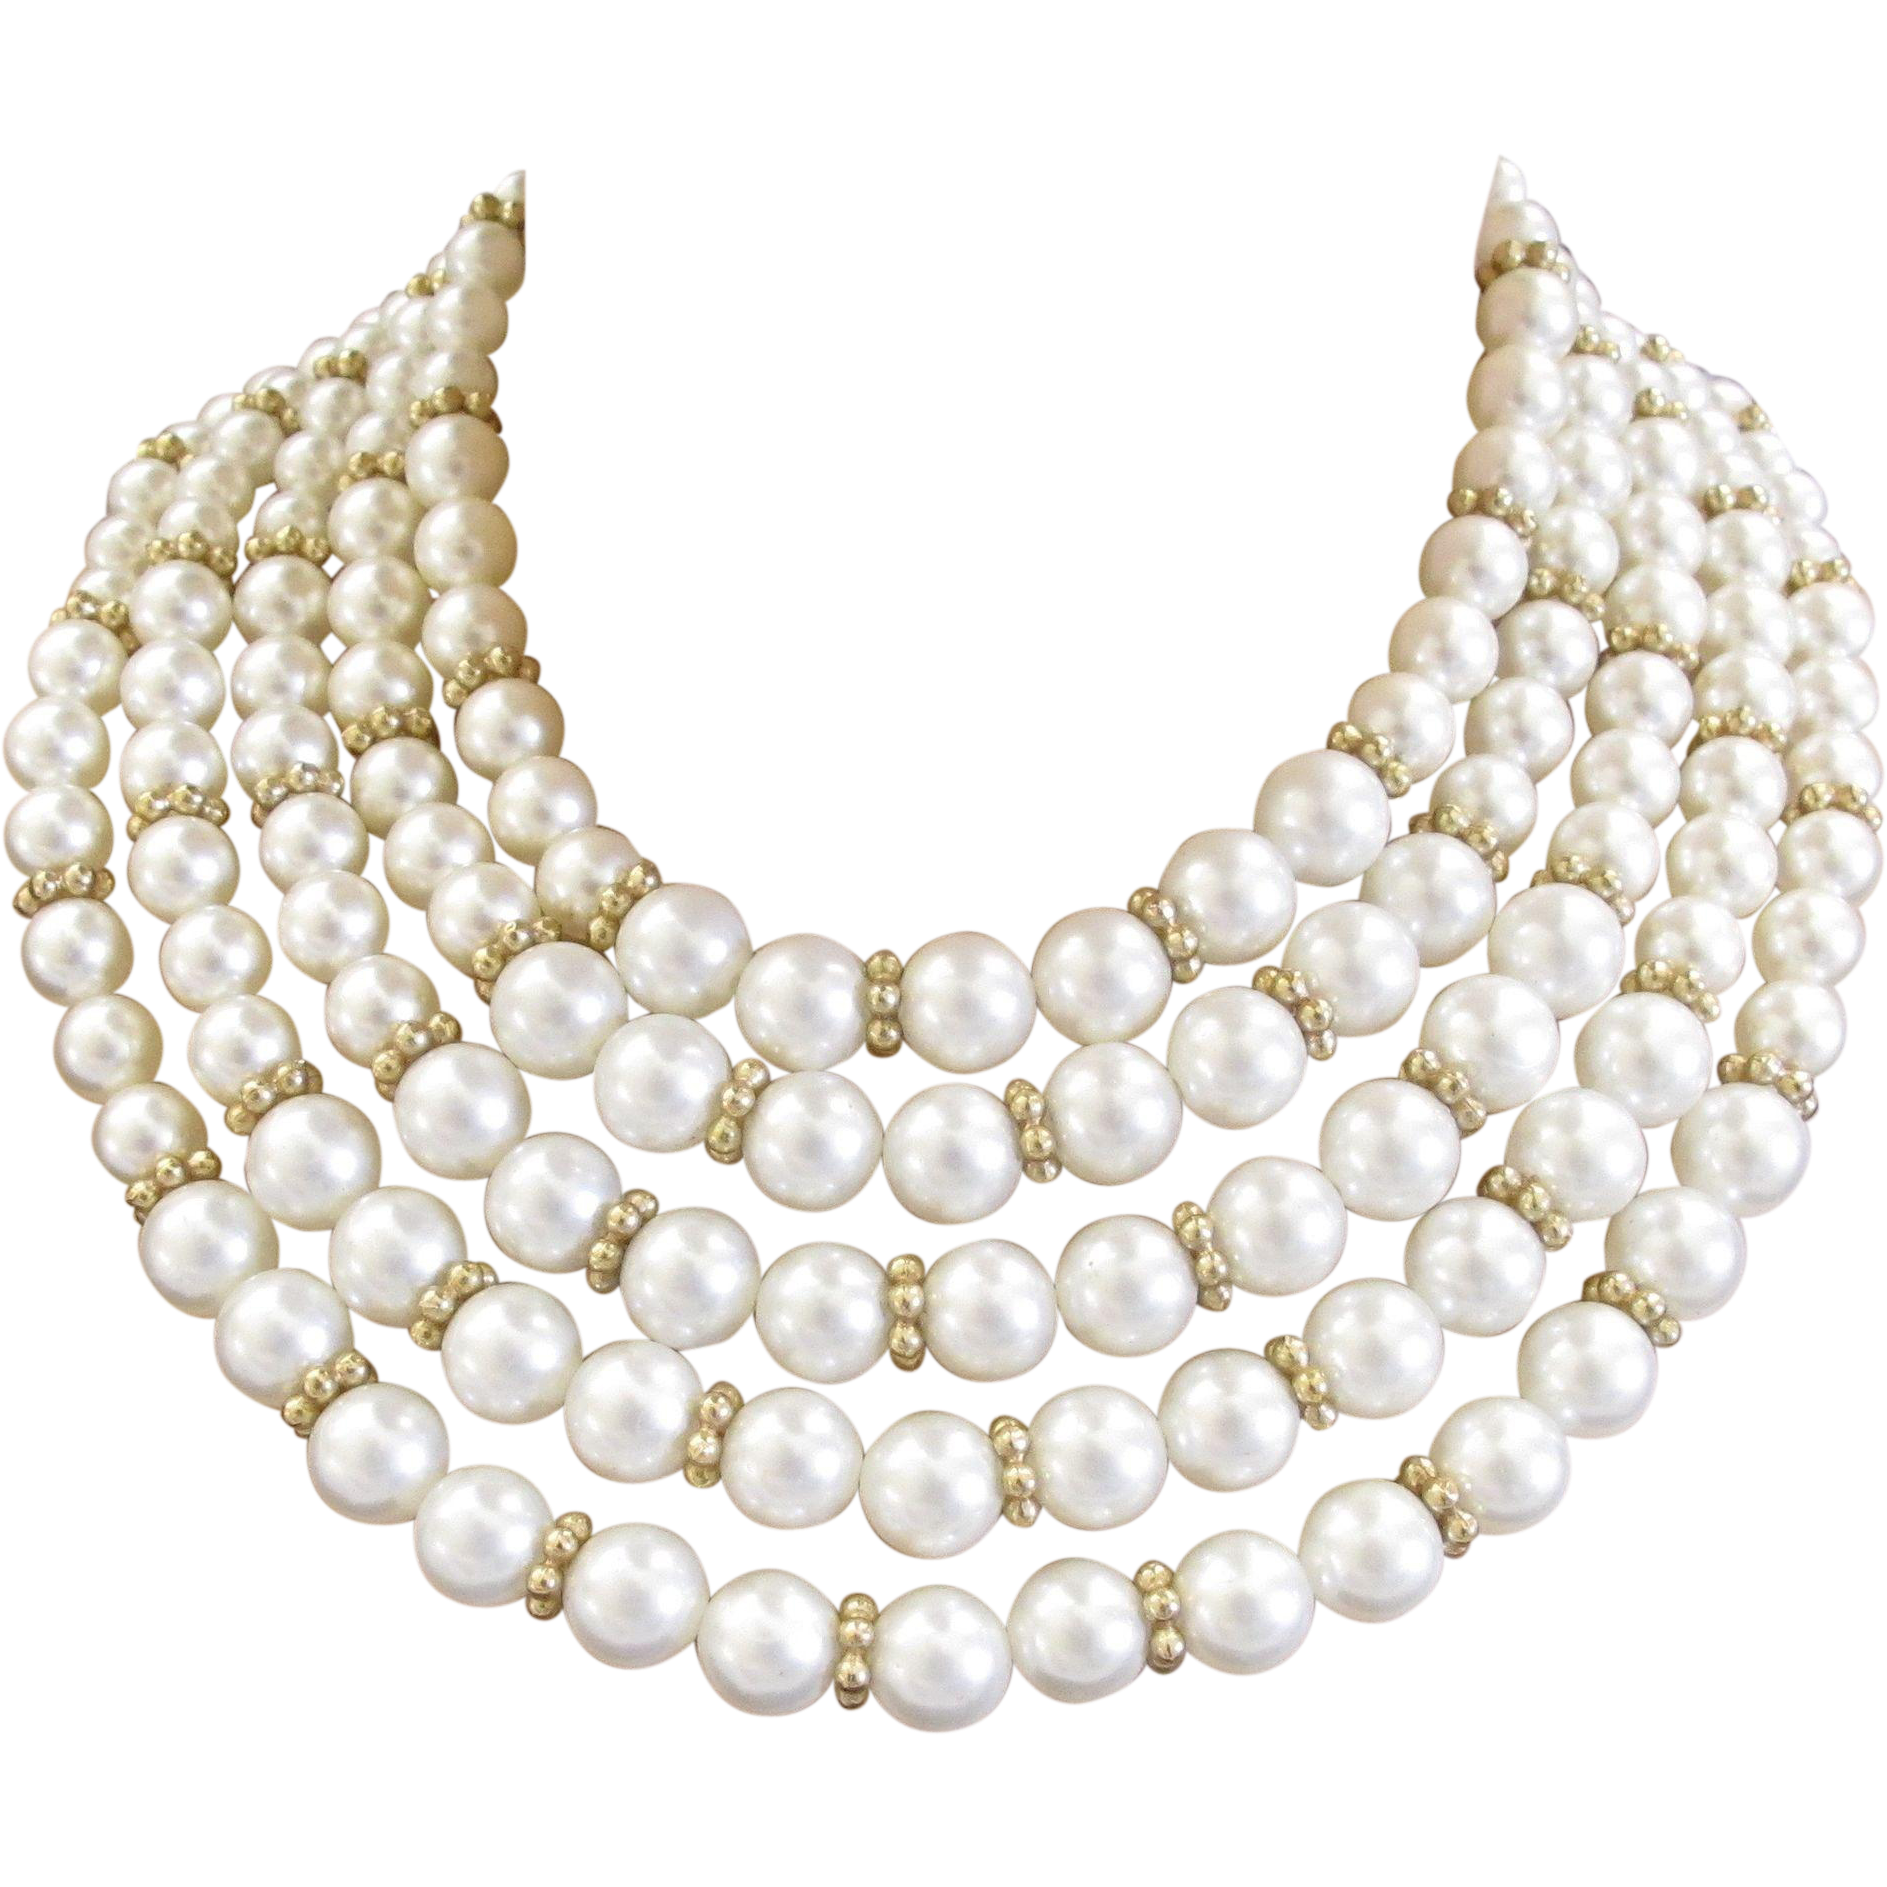 statement itm a ebay makes necklace pearl euc chanel faux knotted chic